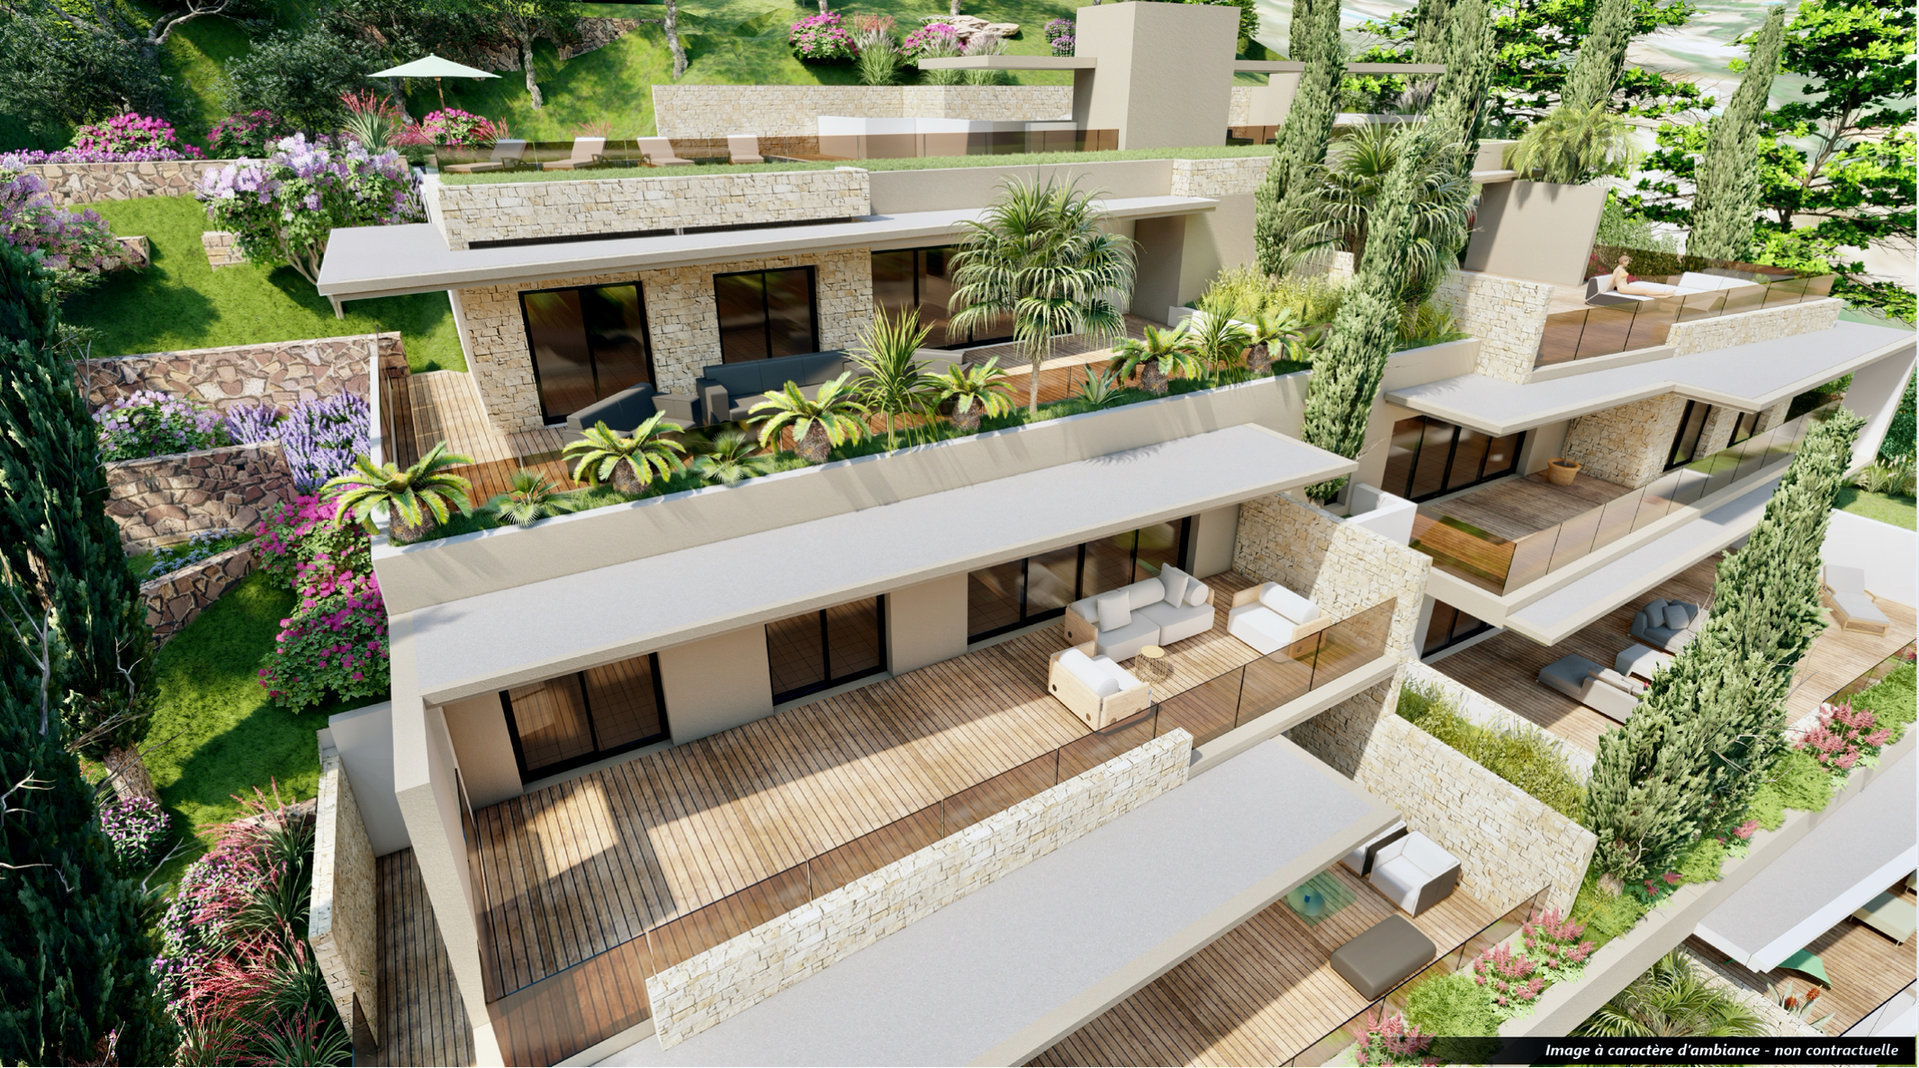 Les Issambres - new construction high standing apartment (81,9m2) with great sea-view